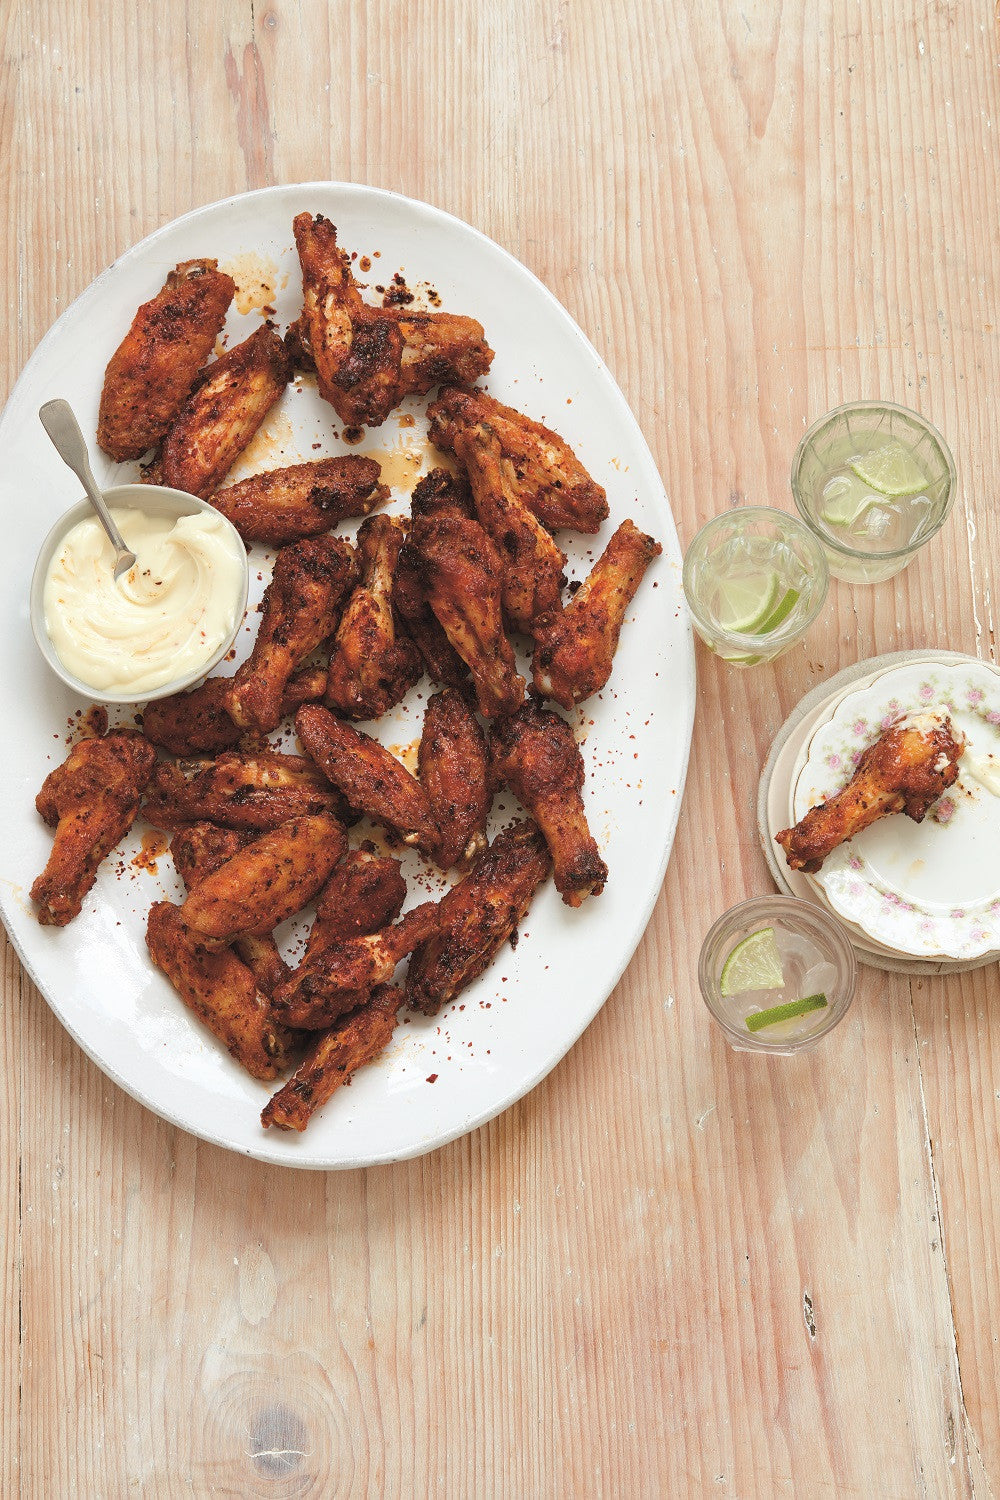 Crispy Baked Chicken Wings with Aleppo Pepper by Emma